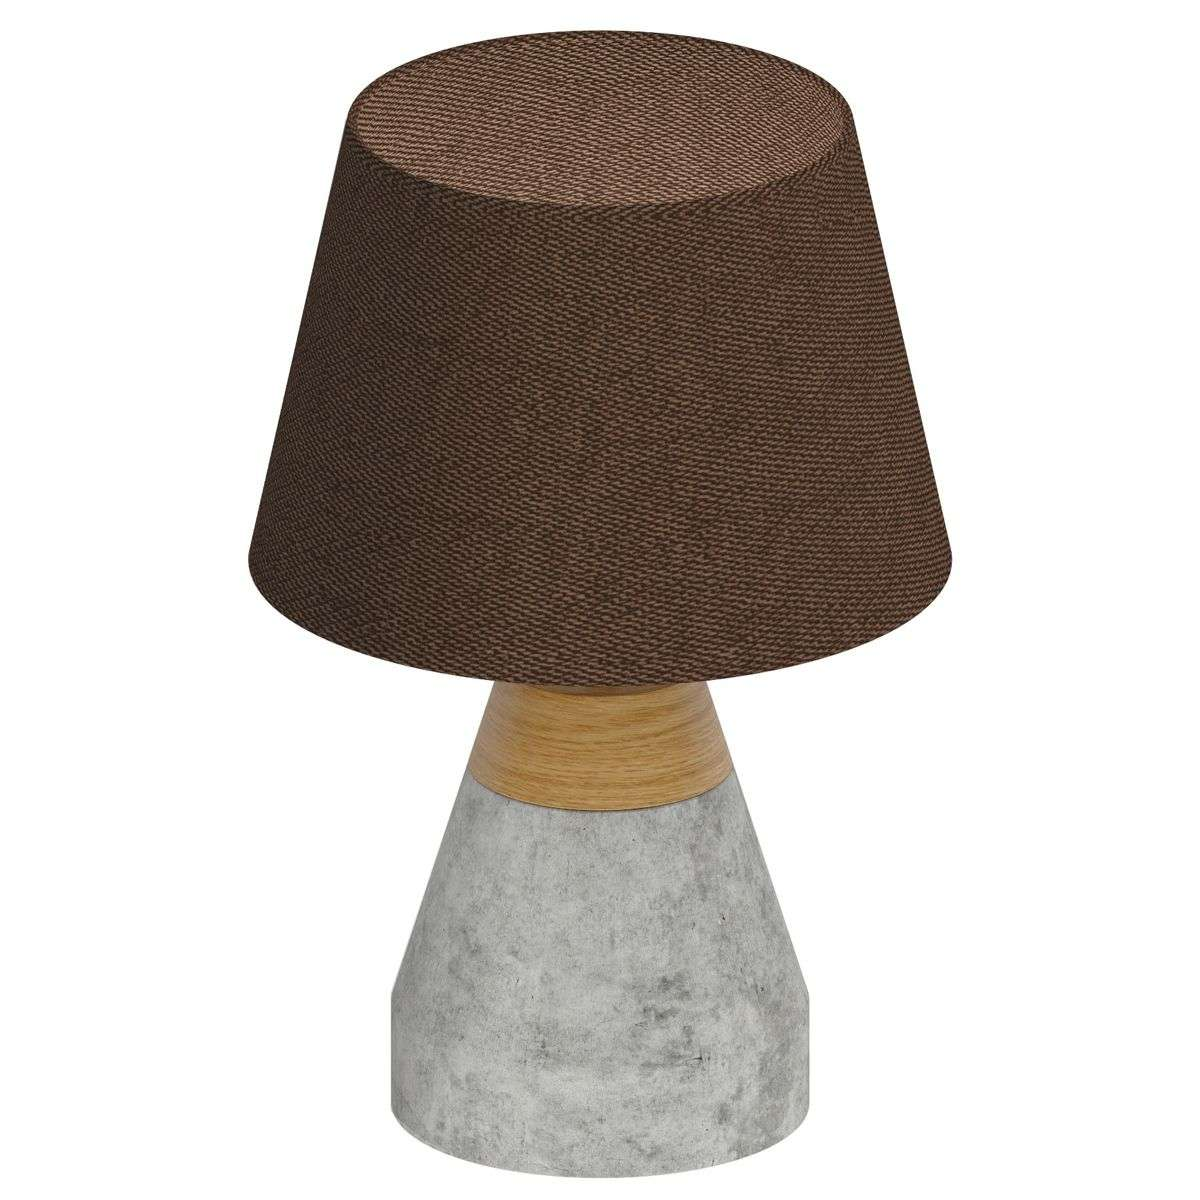 Stylish tarega fabric table lamp concrete base lights stylish tarega fabric table lamp concrete base 3031819 31 mozeypictures Choice Image